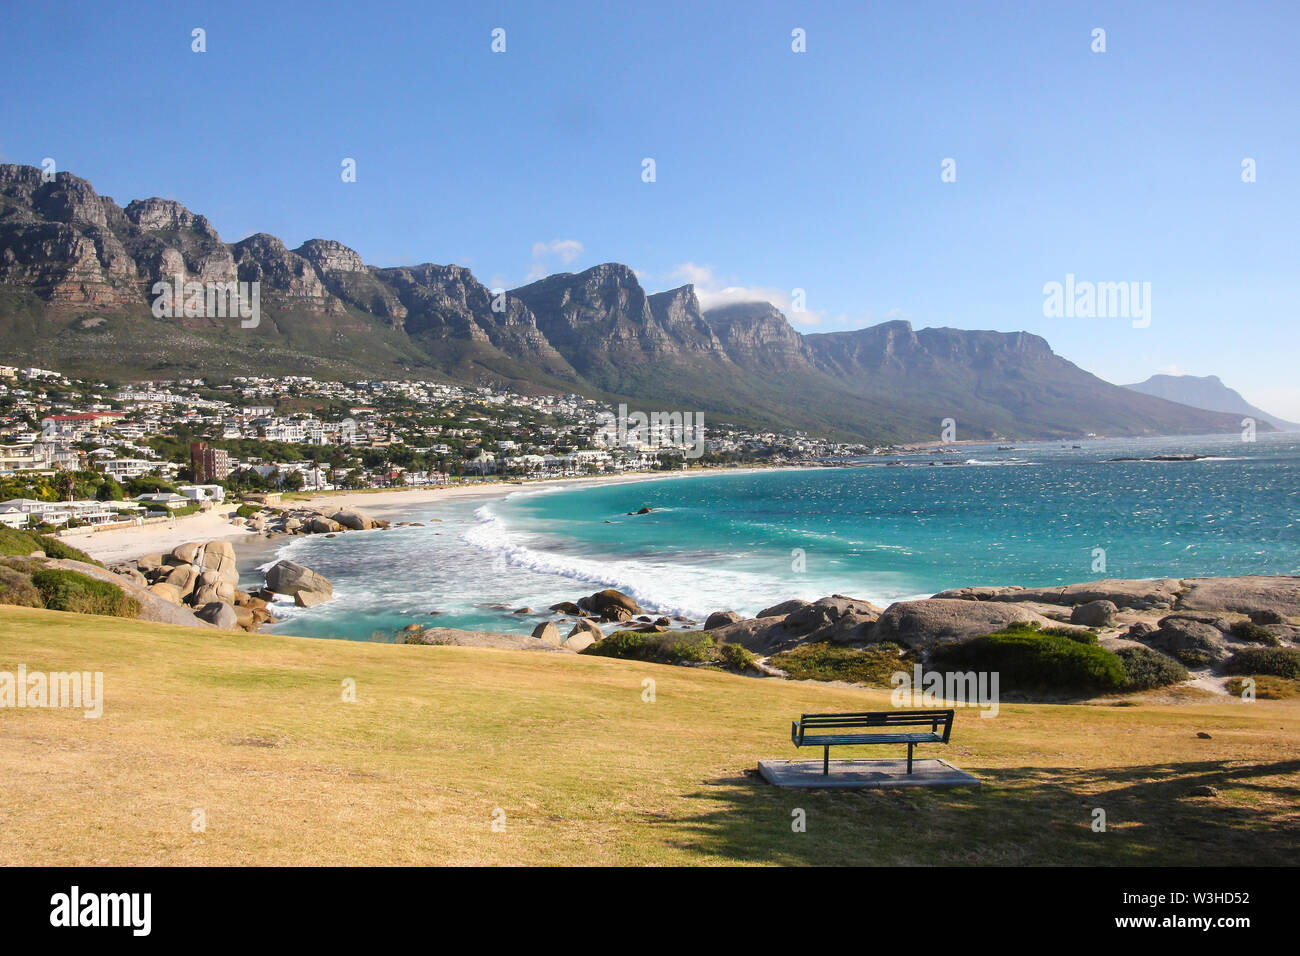 landscape view over the Twelve Apostle mountains and Table Mountain national park and Camps Bay coastal suburb of Cape Town, South Africa Stock Photo